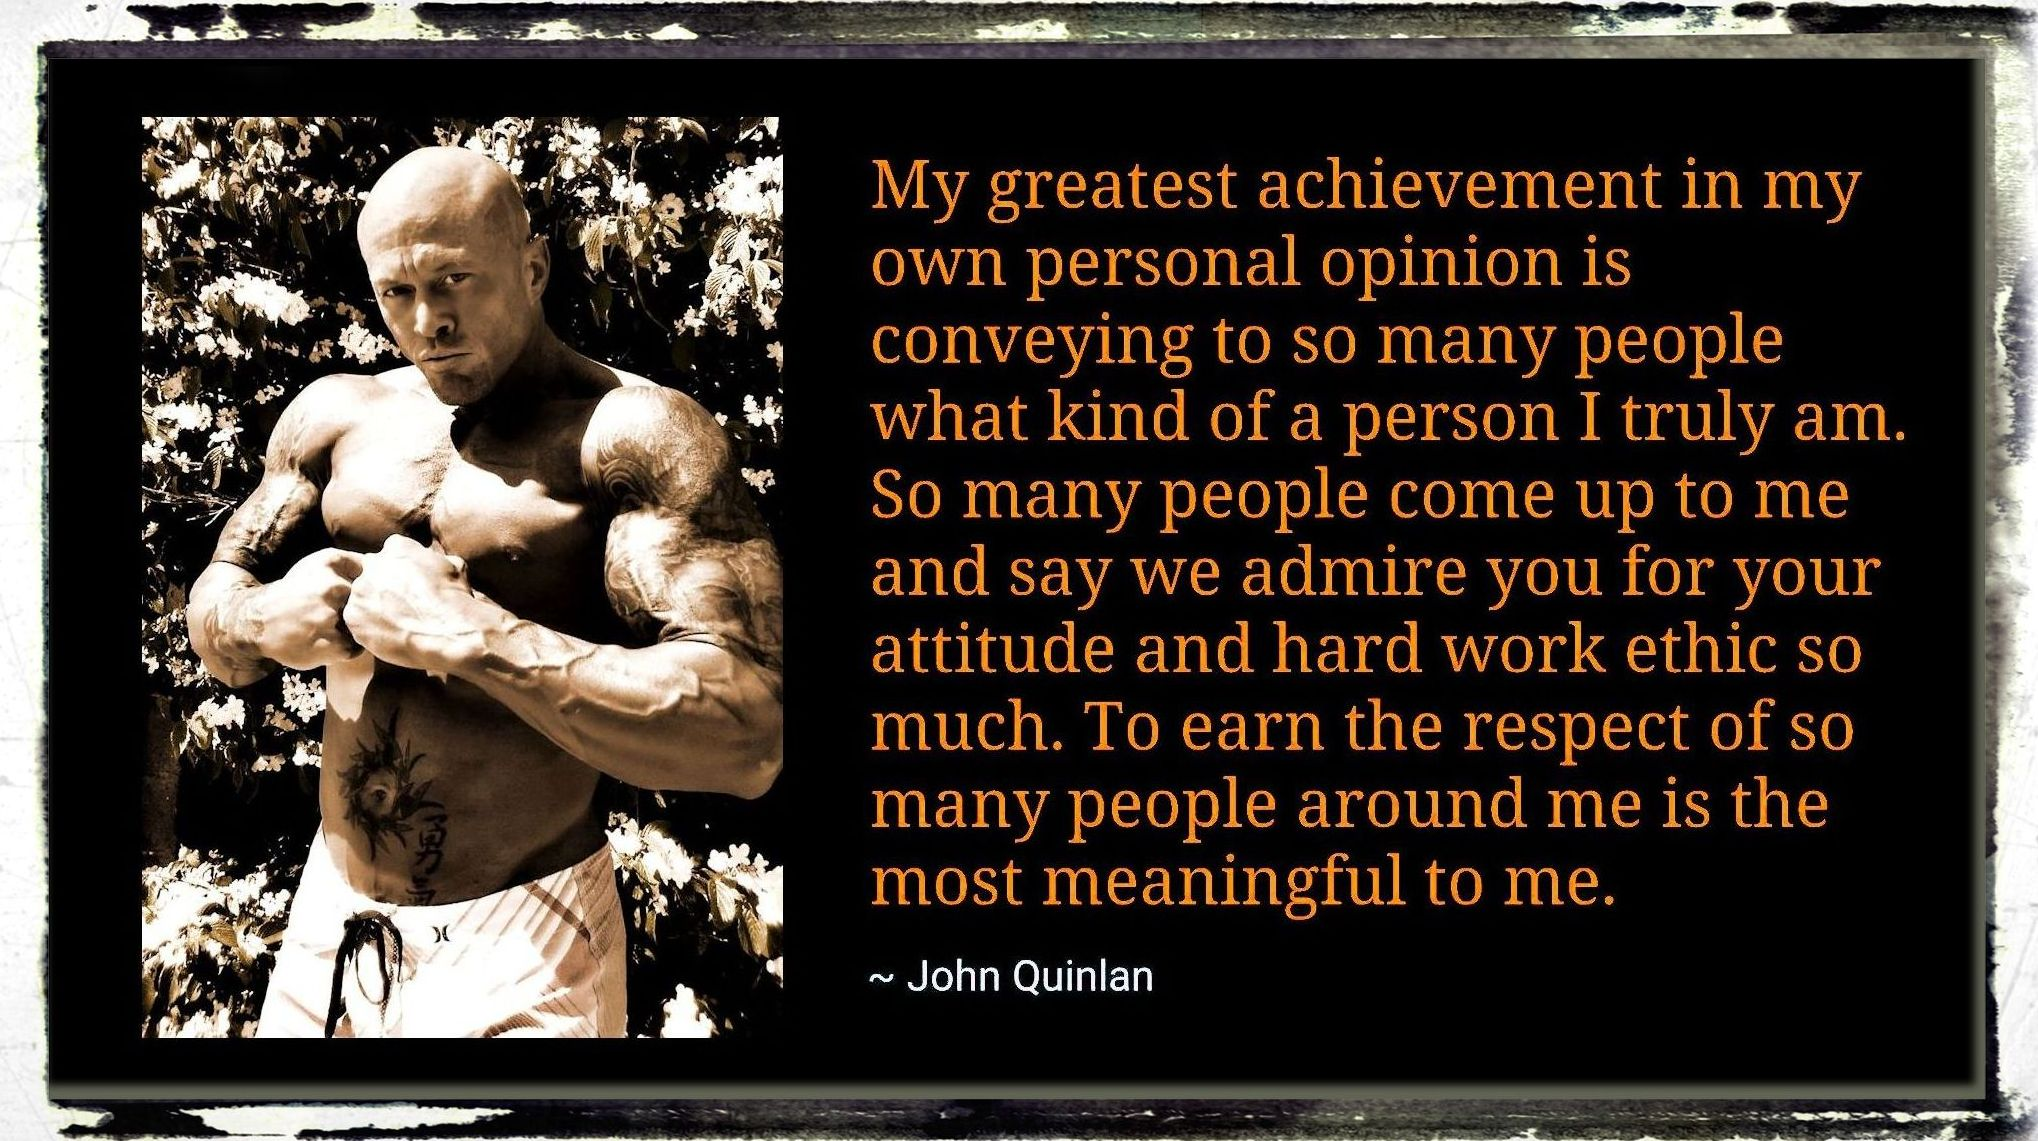 Fitness & Romance Cover Model Actor John Joseph Quinlan Quote #JohnQuinlan